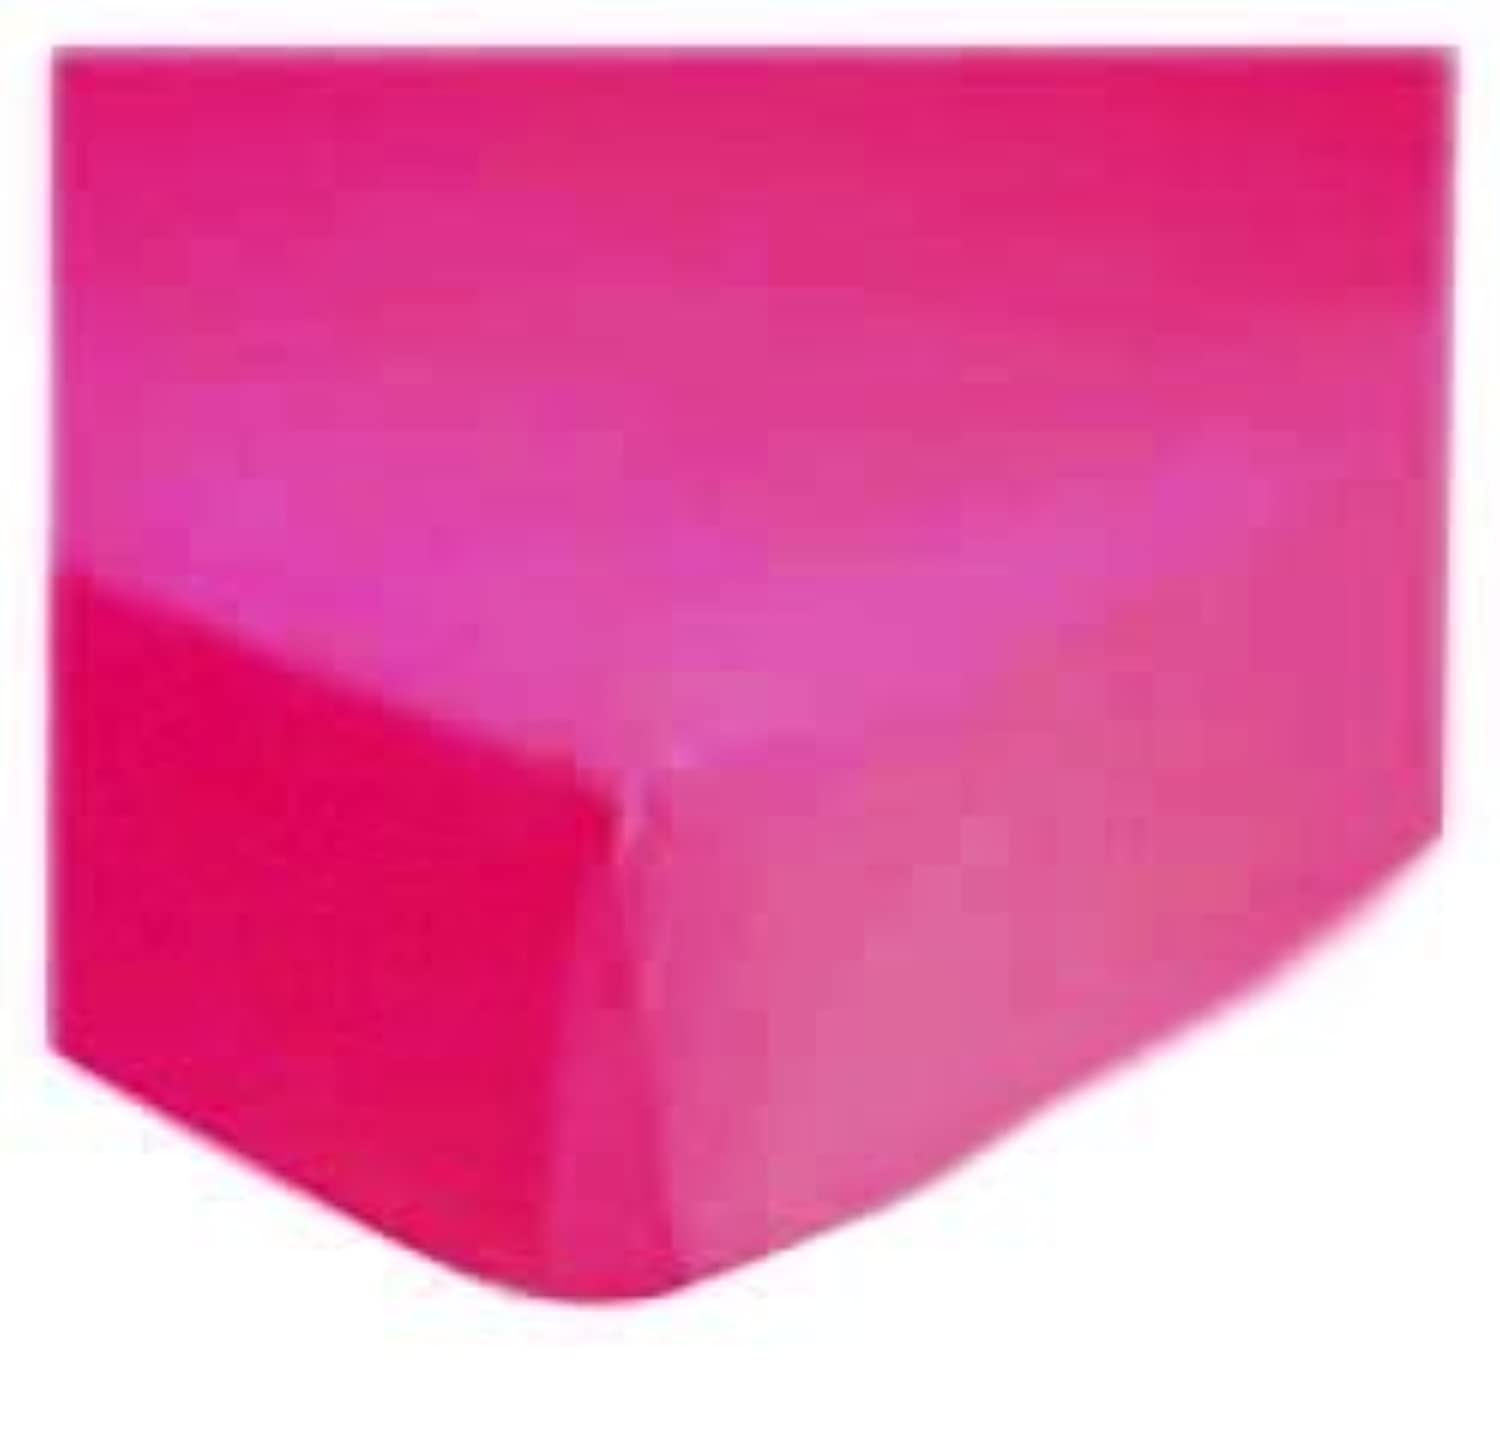 SheetWorld Fitted Portable / Mini Crib Sheet - Hot Pink Jersey Knit - Solid Colors by sheetworld